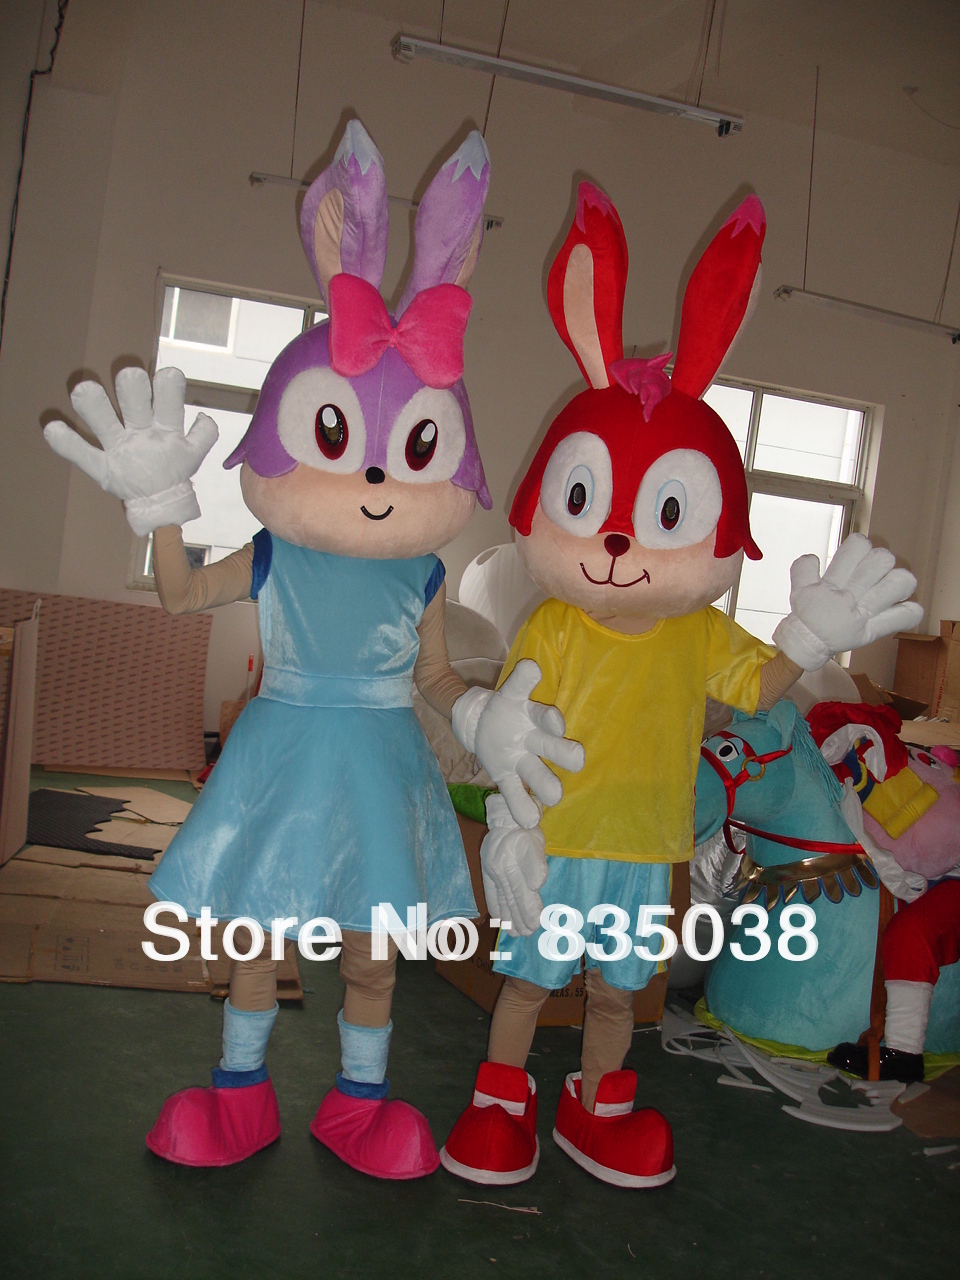 Cheap Bunny Mascot Costume Bunny Costumes Bunny Walking Act For Sale(China (Mainland))